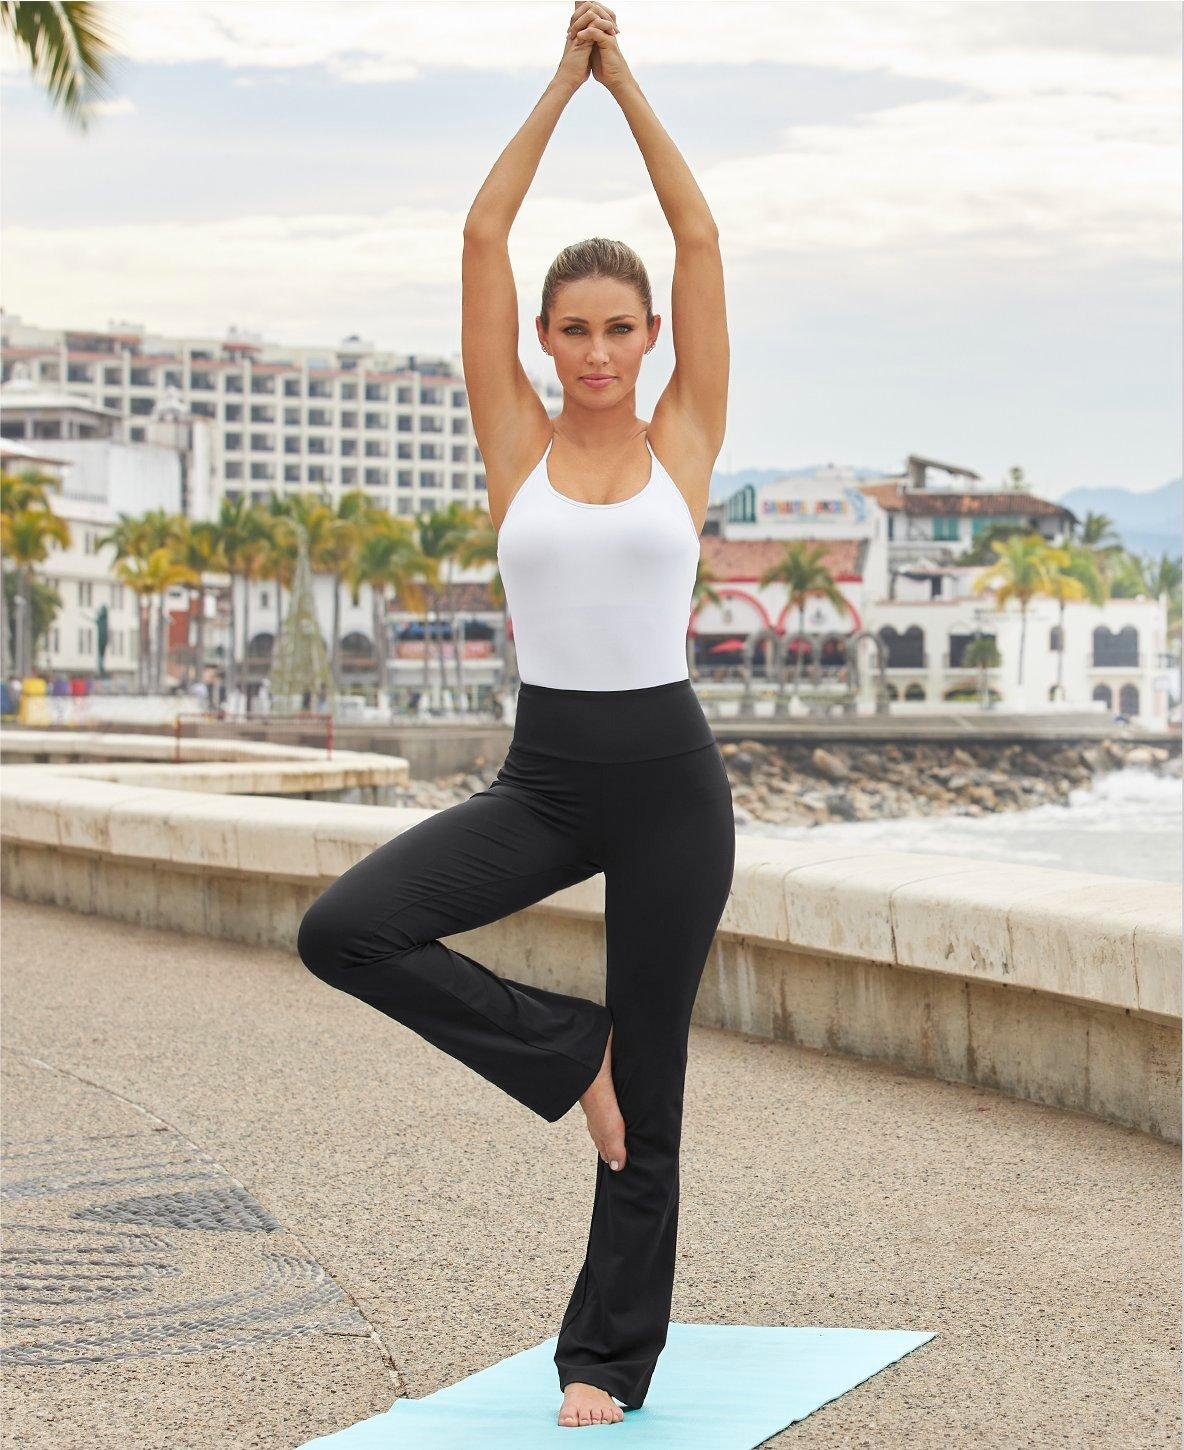 model wearing a white camisole tank top and black yoga pants.